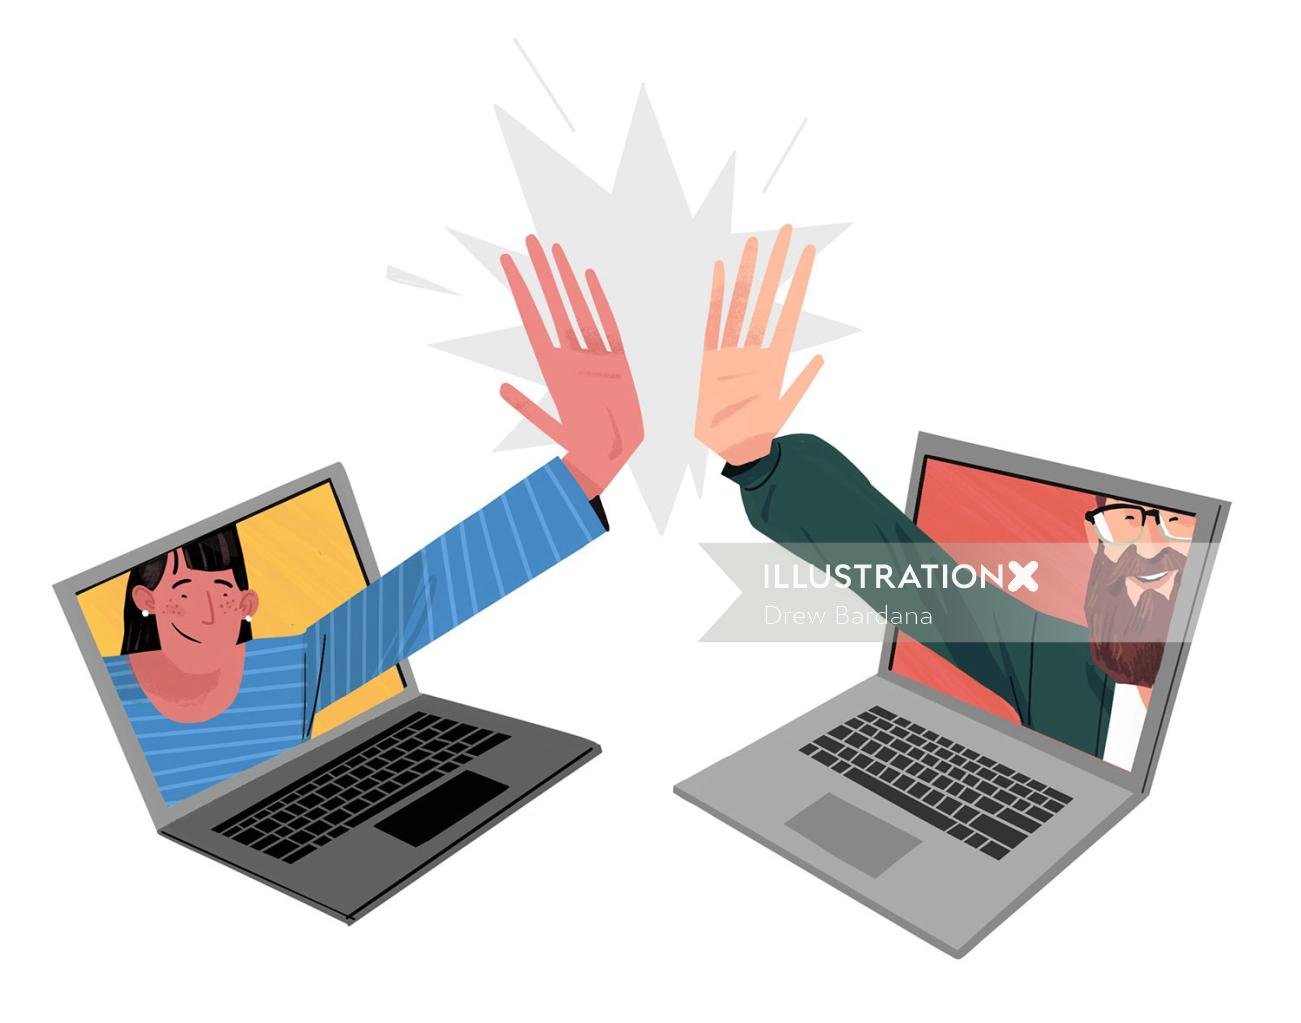 Conceptual art of Two people high five-ing through two laptops.